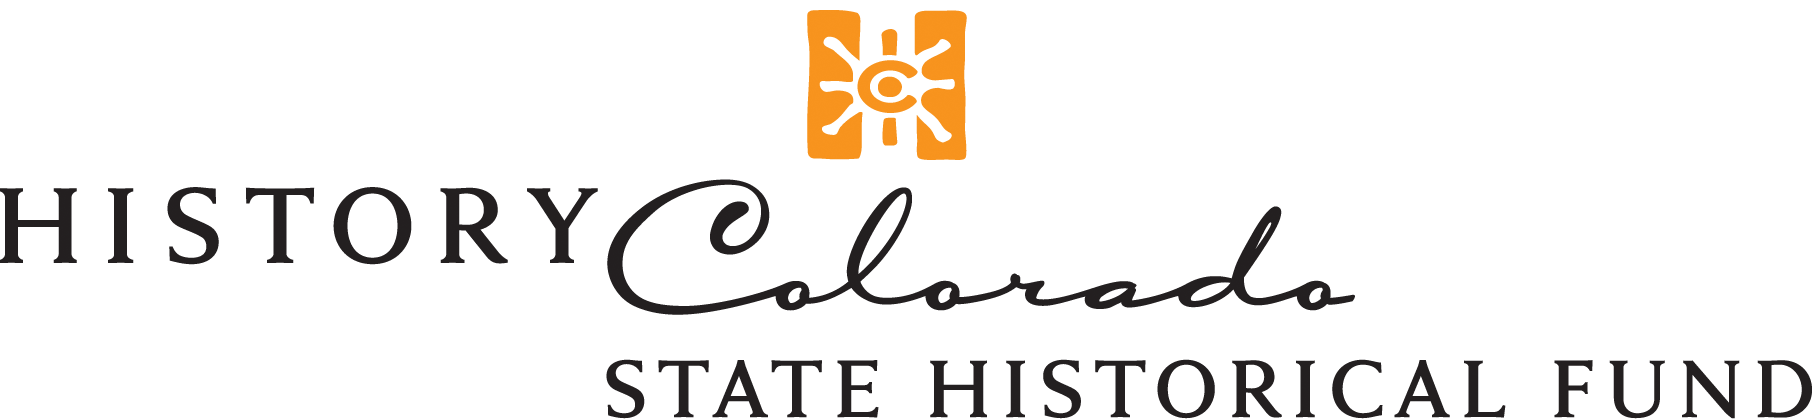 History Colorado — State Historical Fund logo